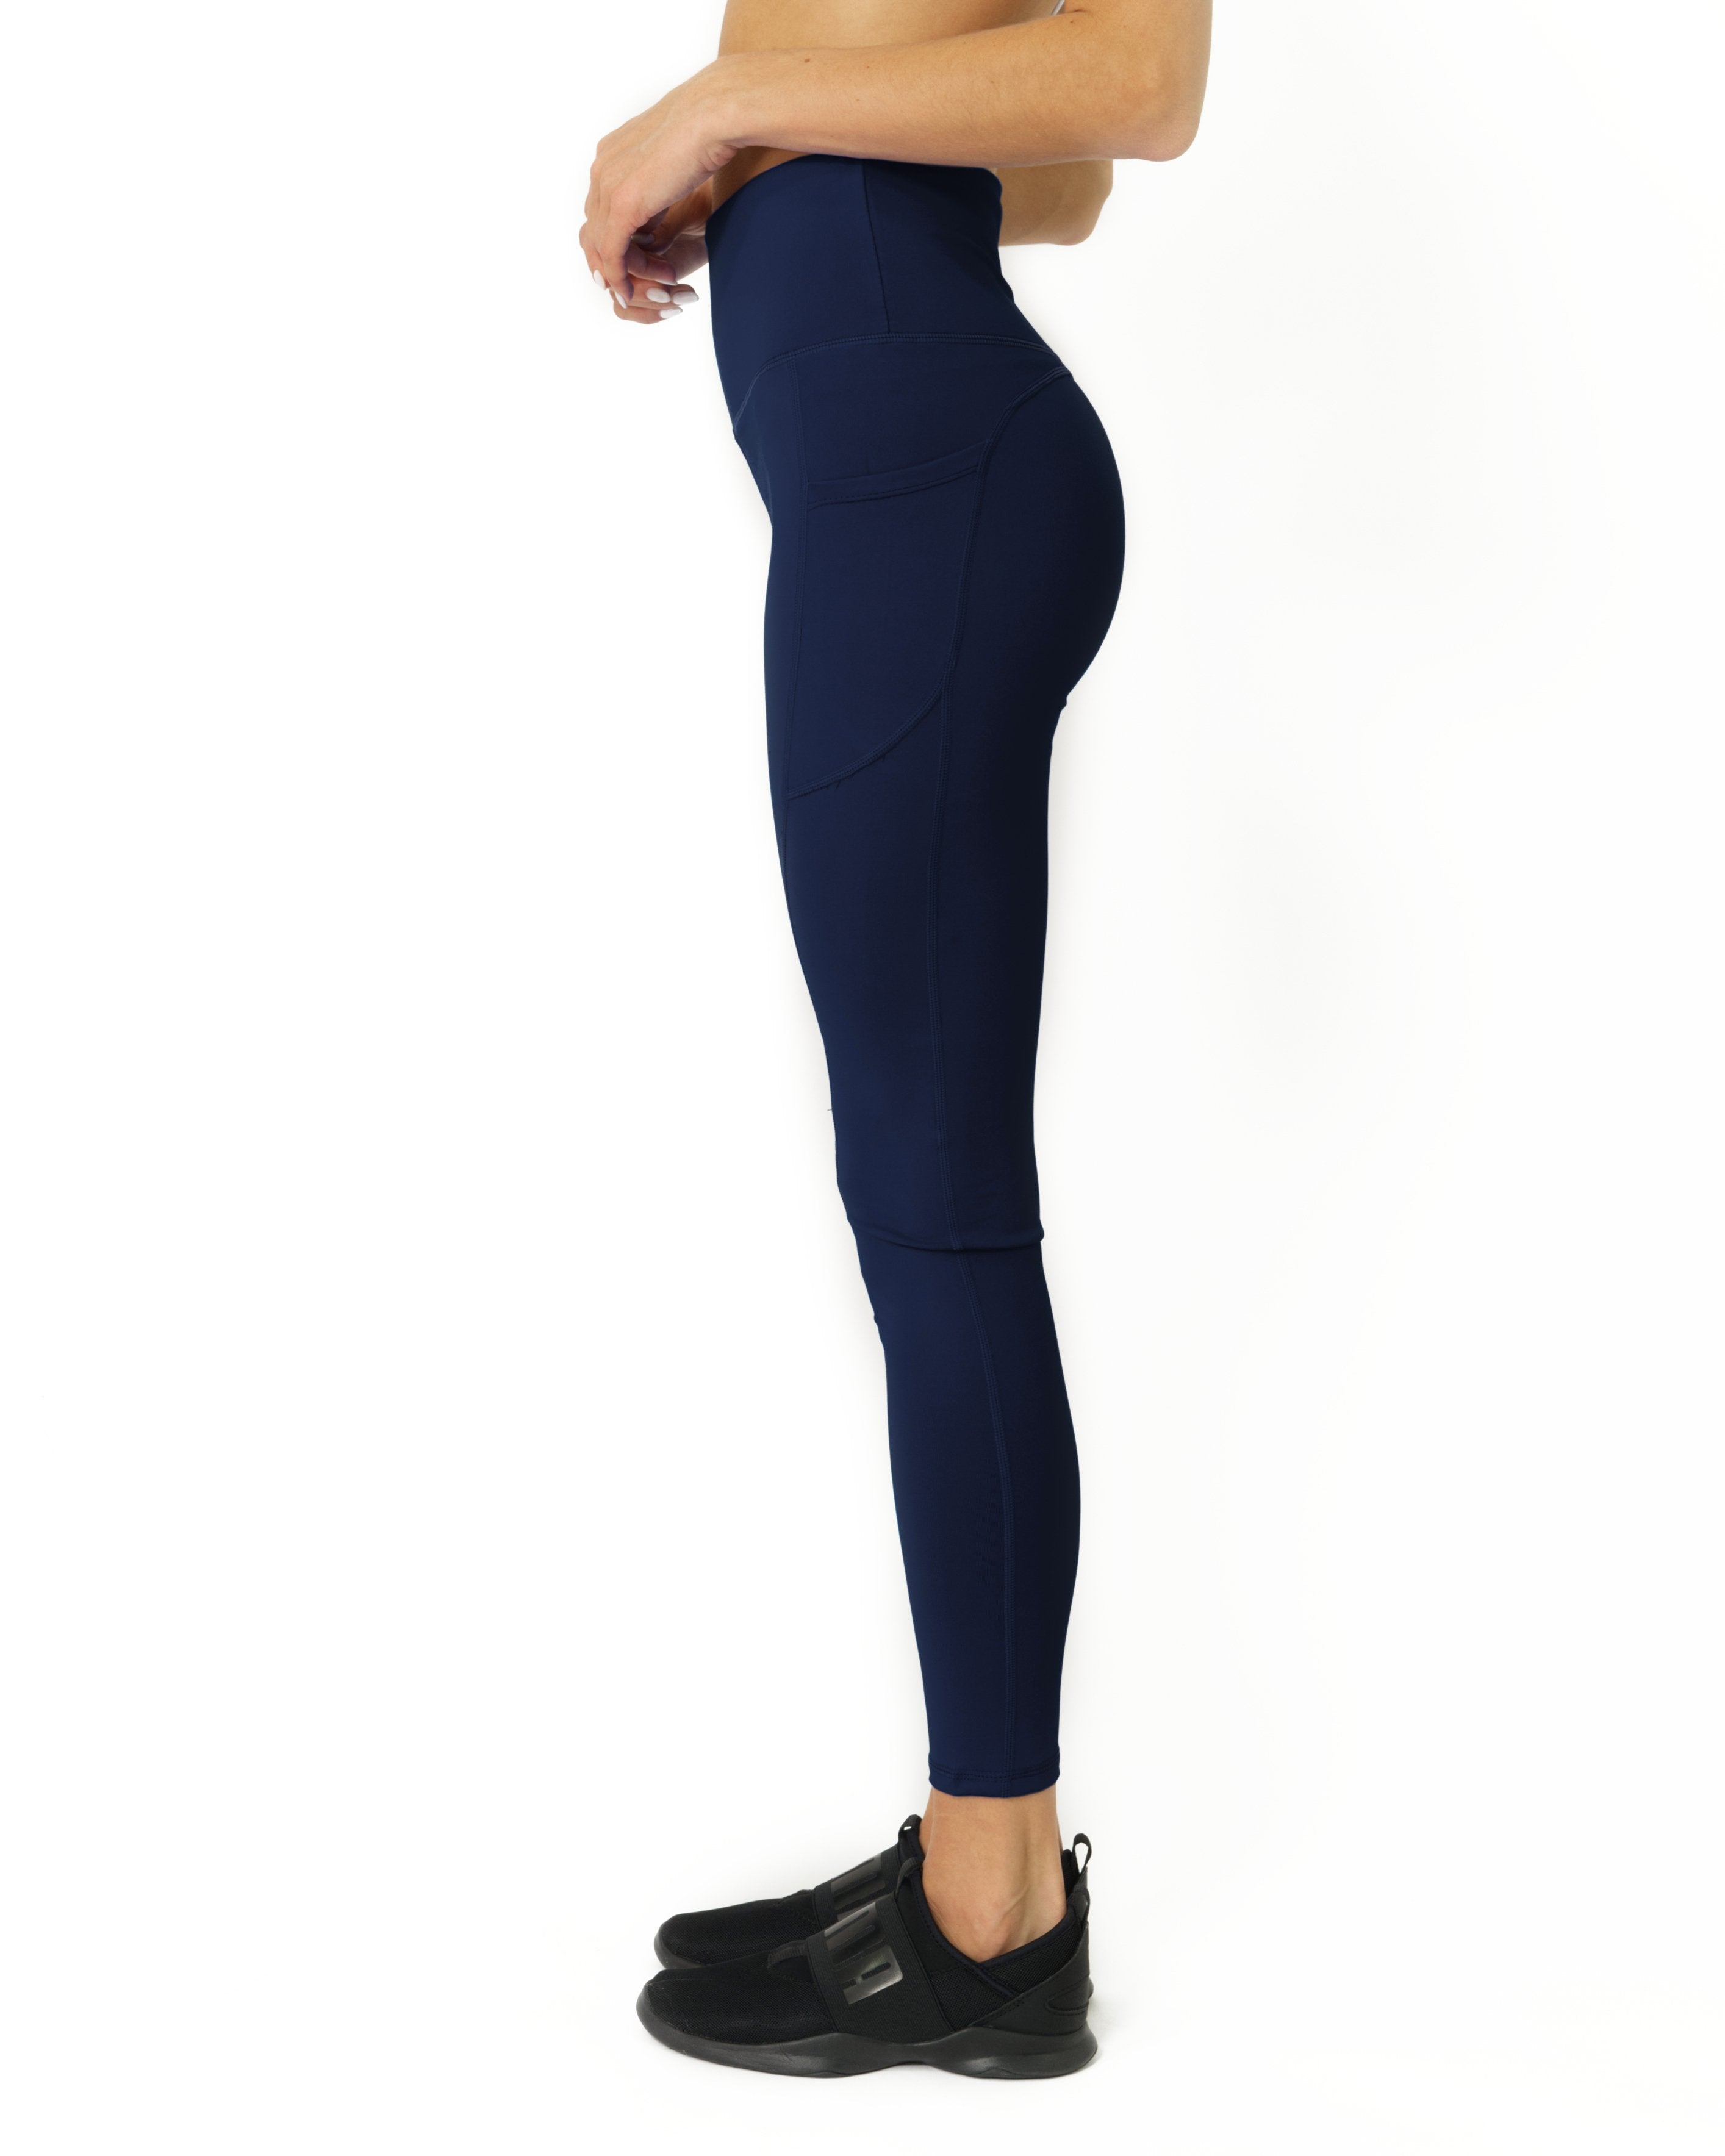 The Bree High Waisted Leggings - Navy Blue